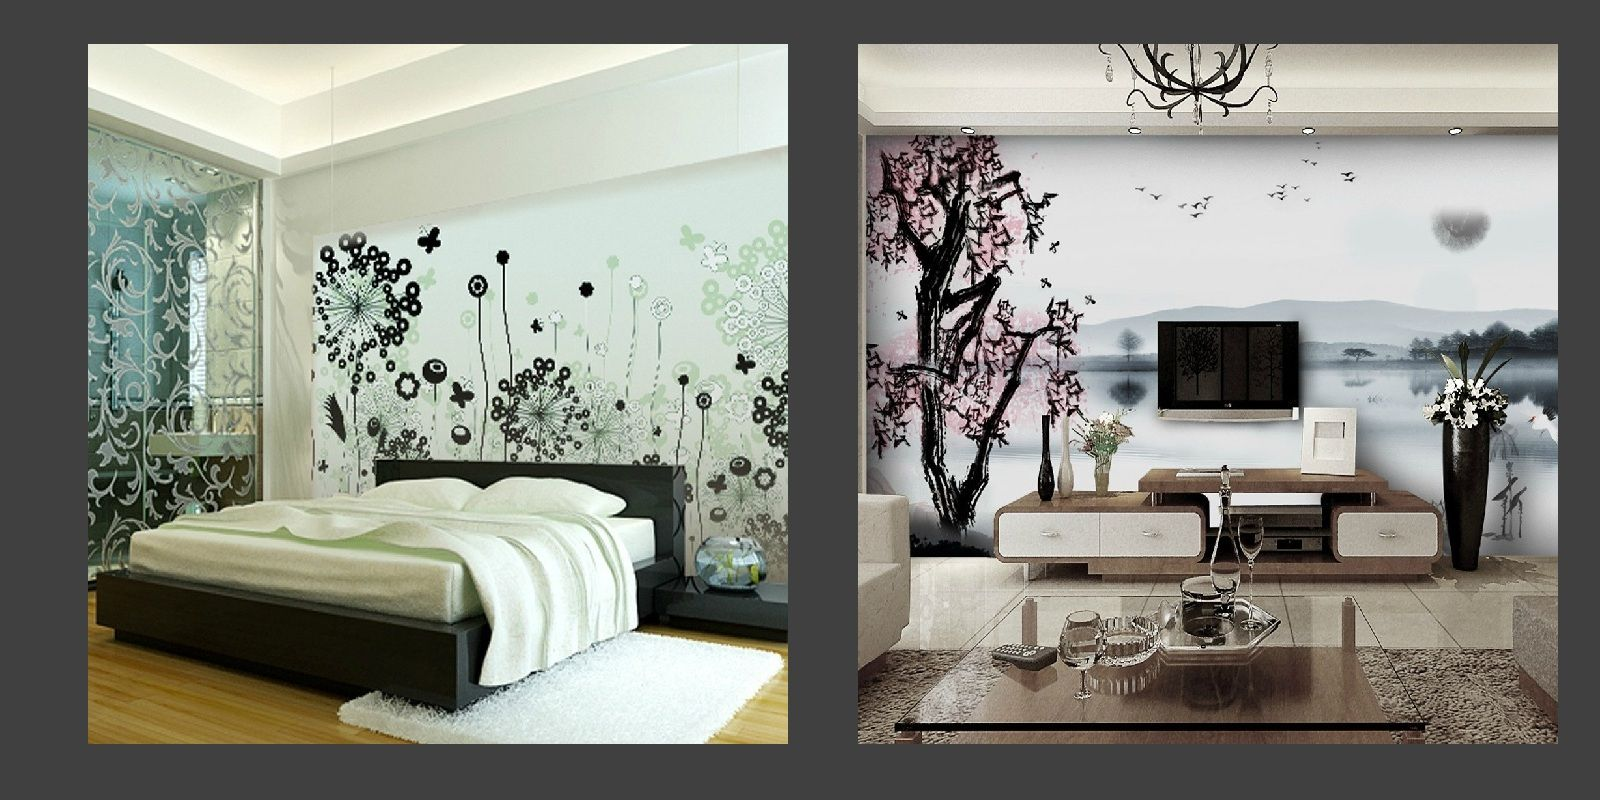 Home wallpaper design patterns home wallpaper designs for Interior wallpaper